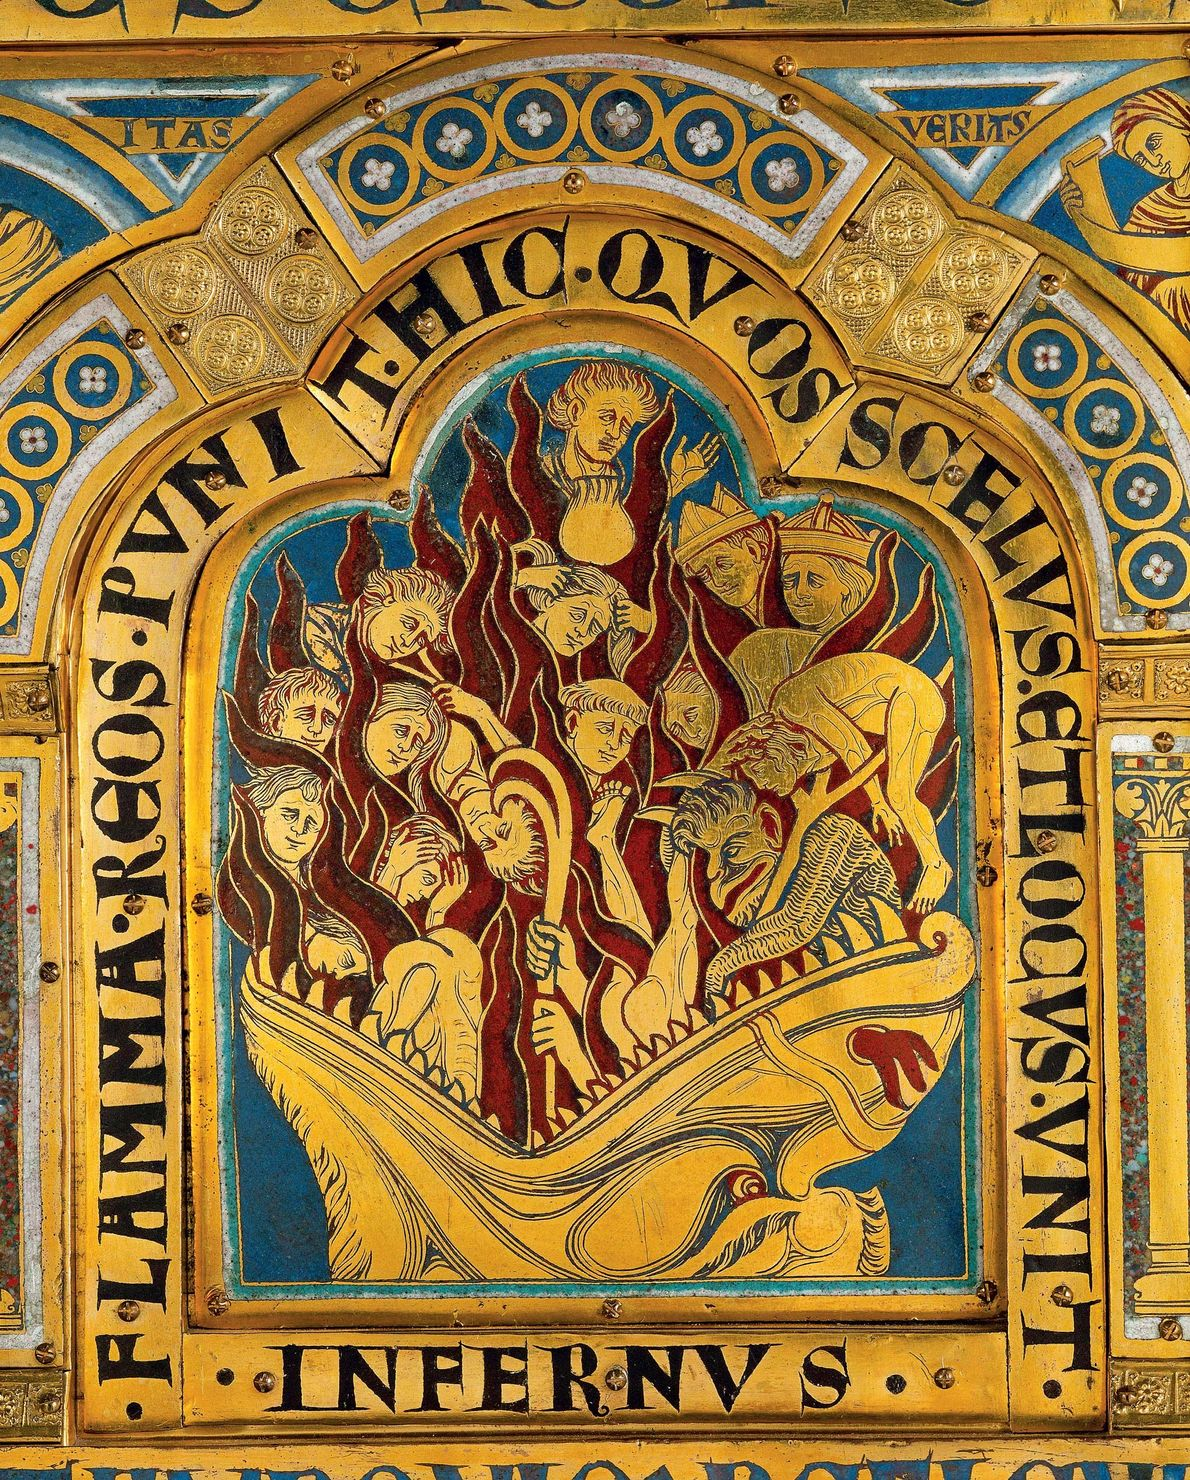 The damned enter the inferno in this altarpiece by Nicholas of Verdun, late 12th century, Cathedral ...